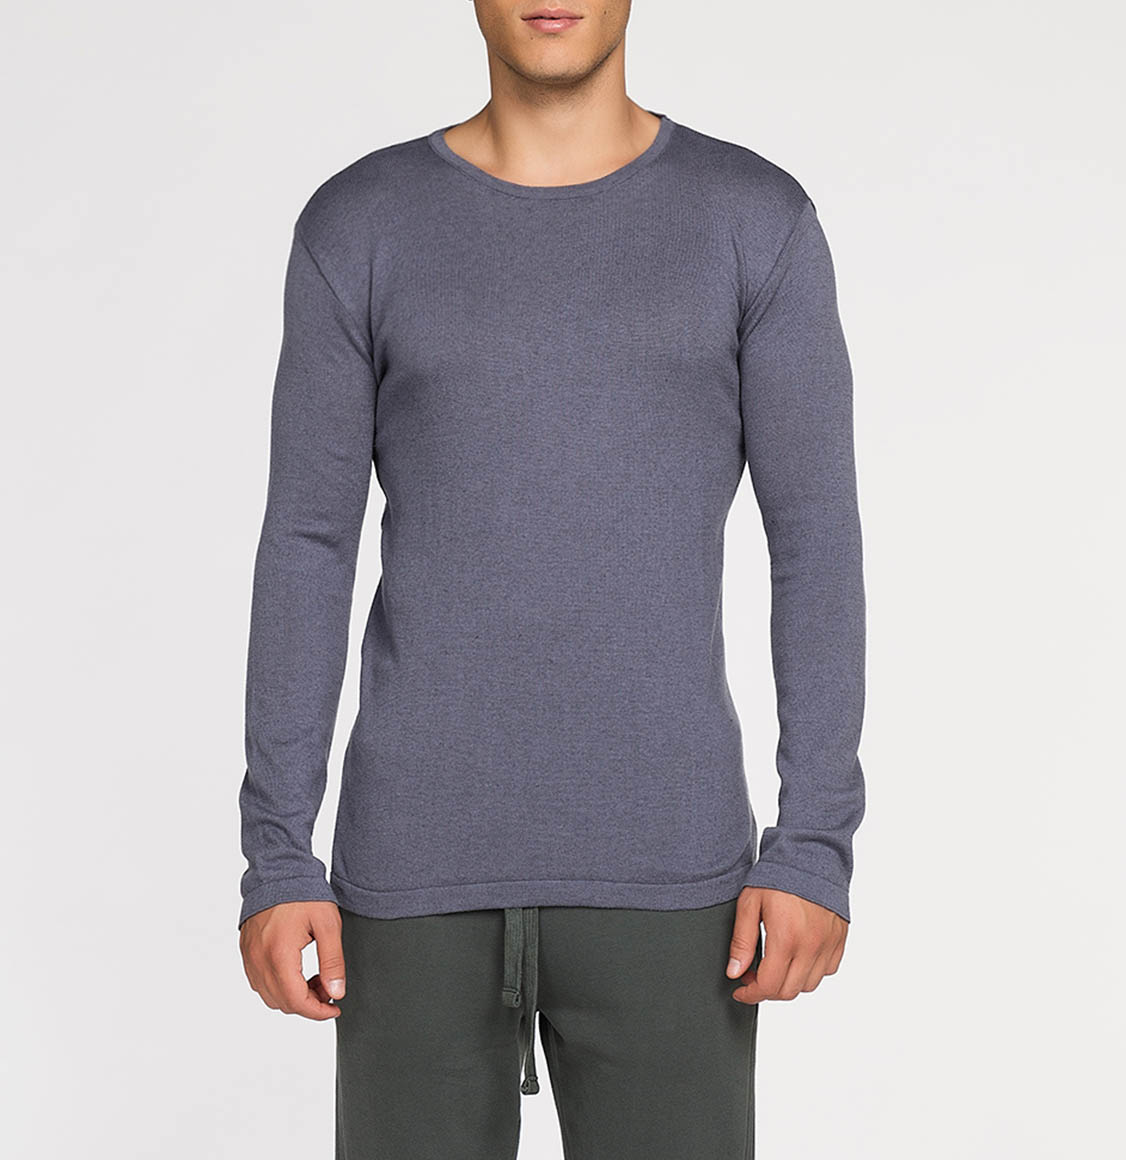 Cashmere Blend Crew Neck Knitted Sweater Grey